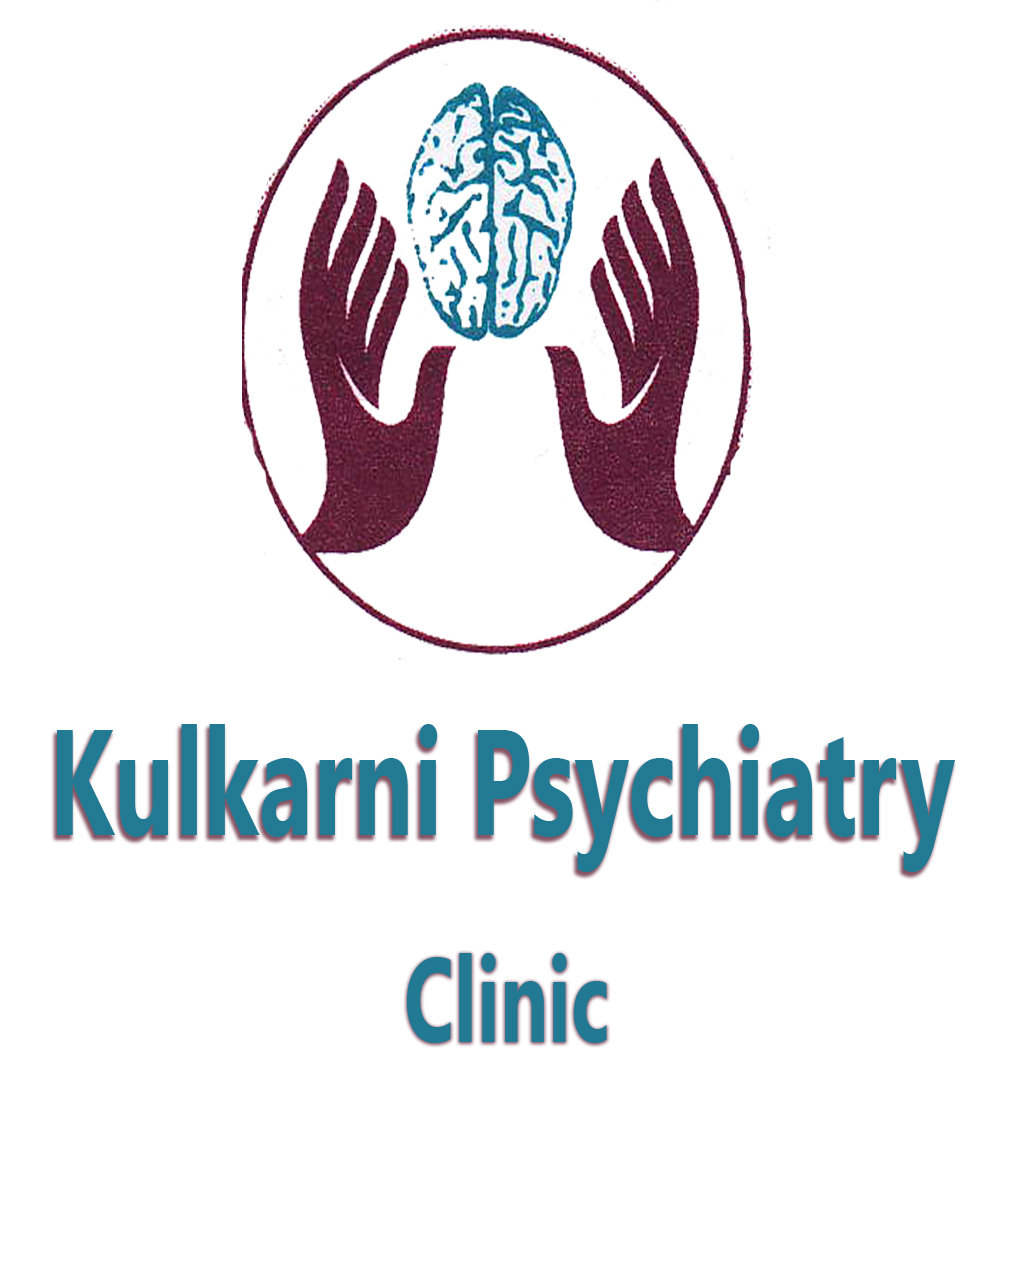 KULKARNI PSYCHIATRY CLINIC